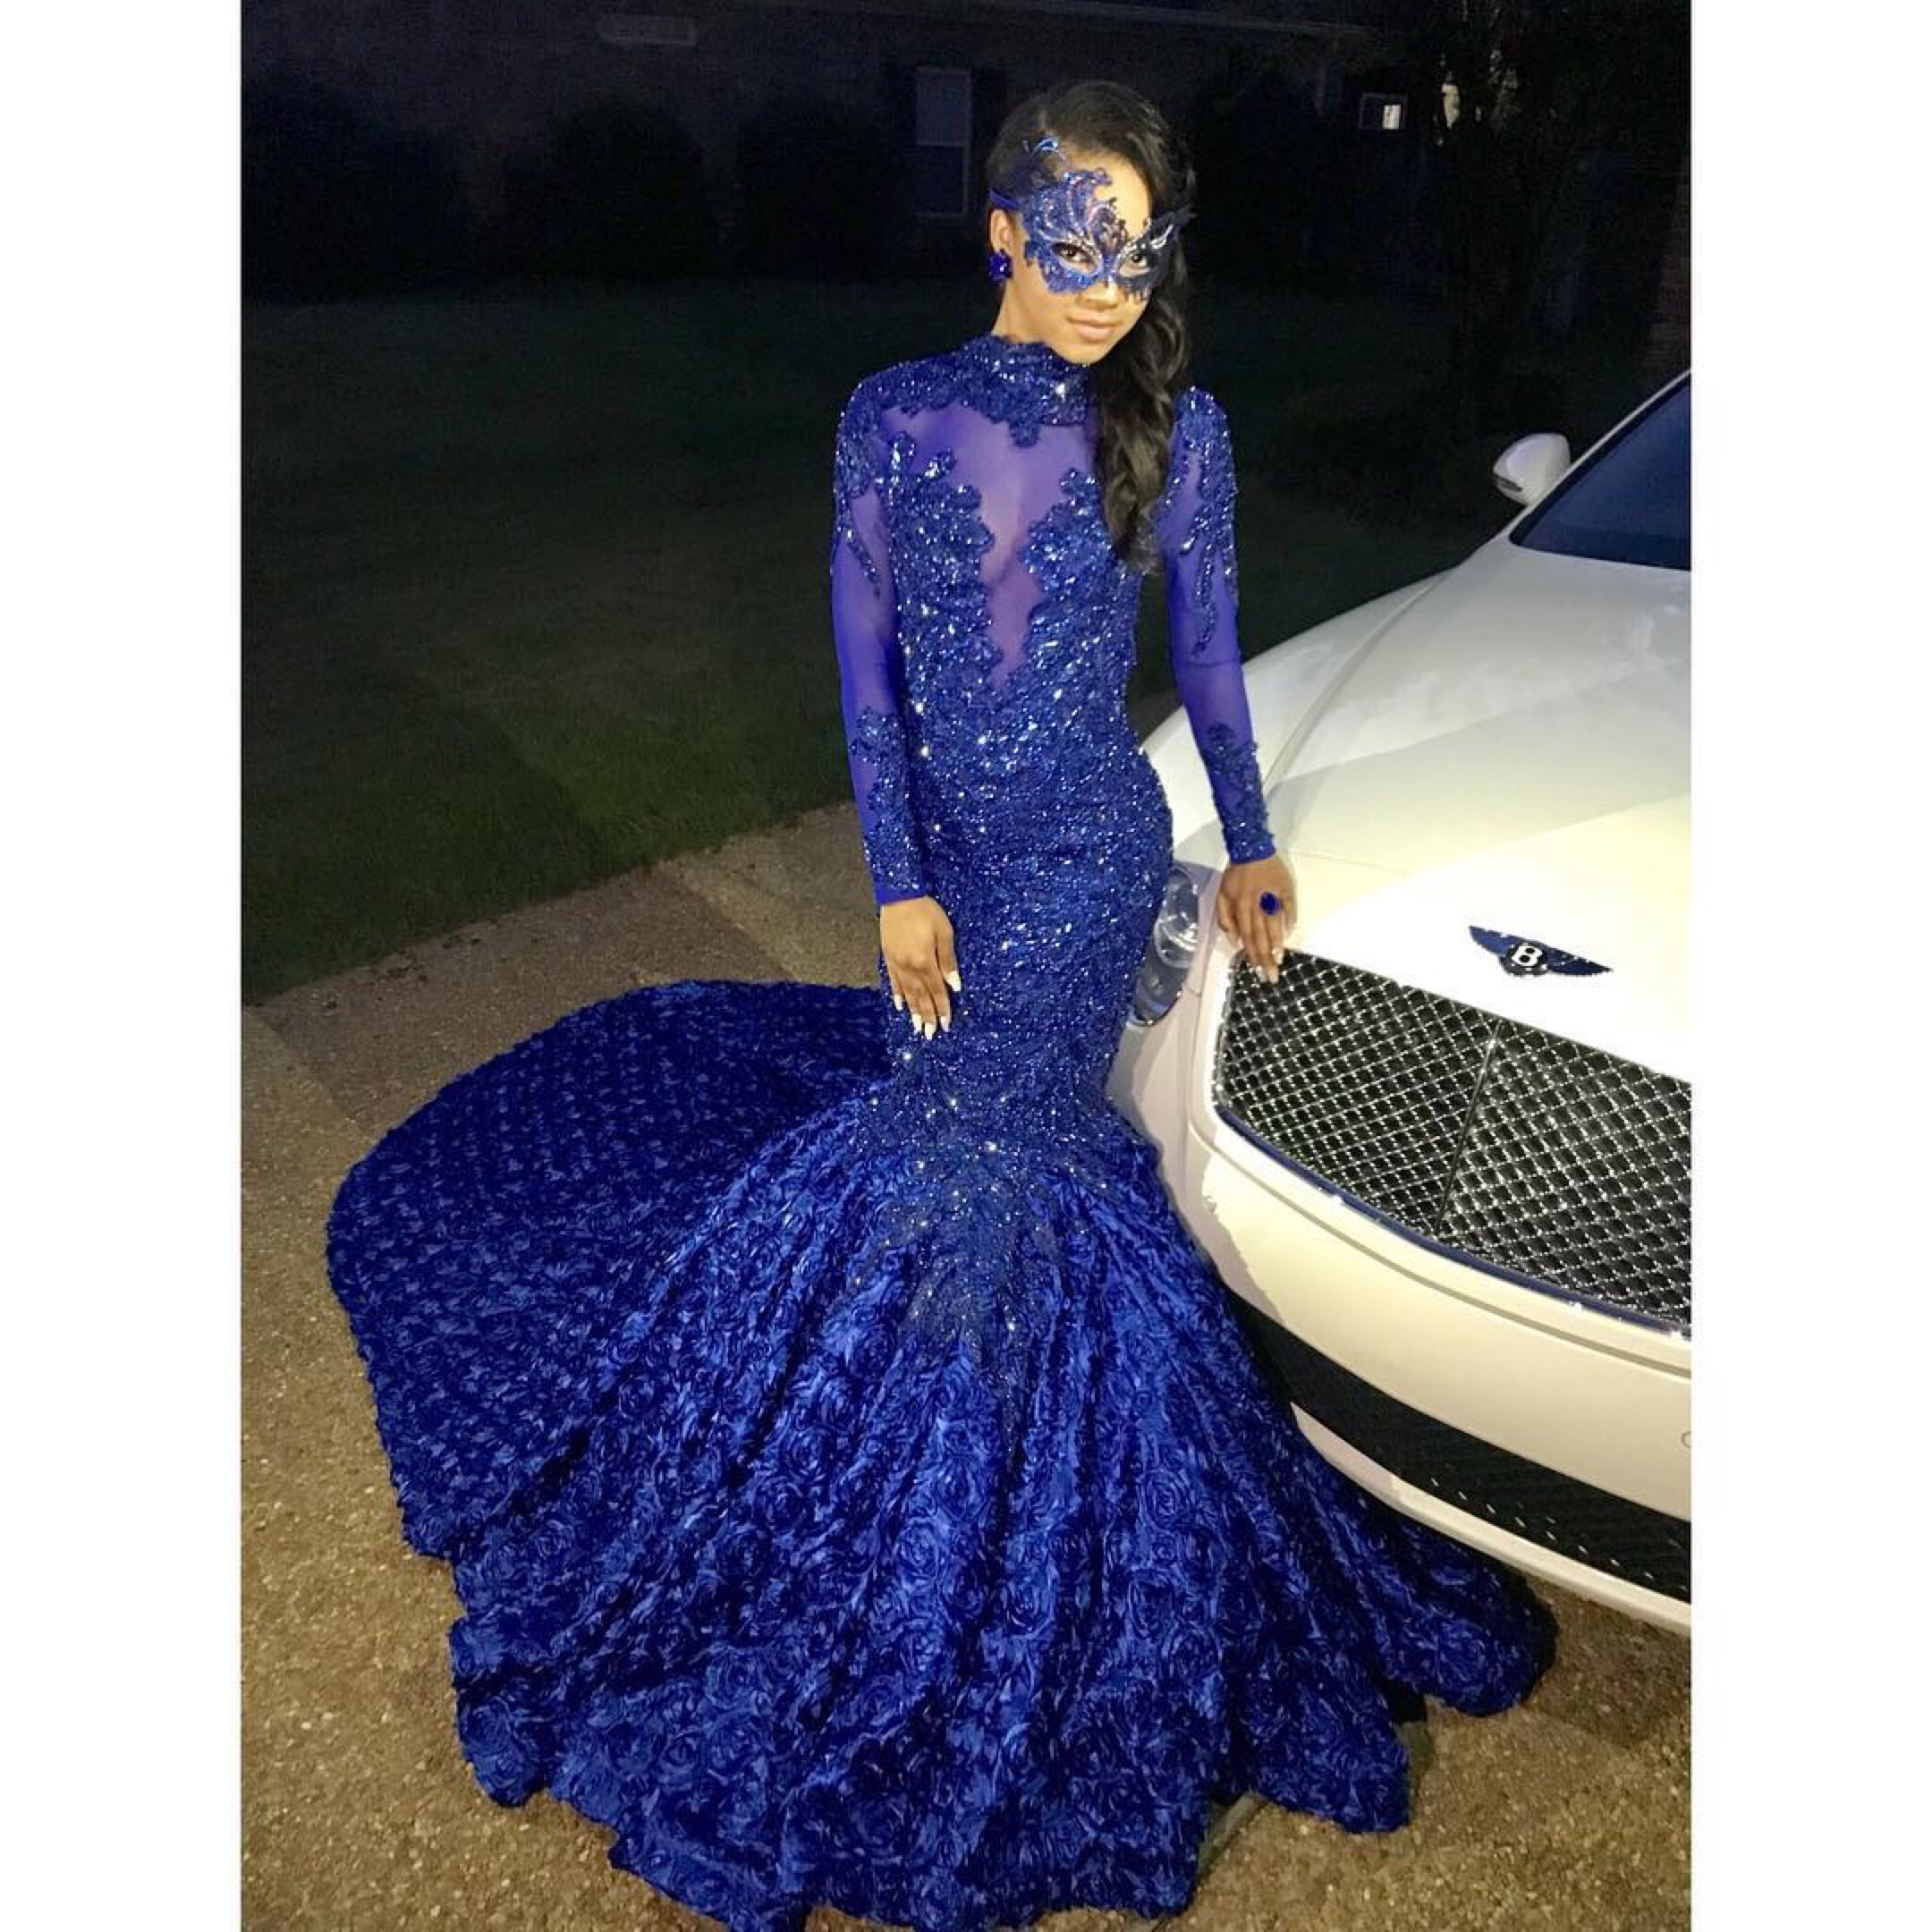 Check out the Prom 2018 Fashions of Bring It! Stars